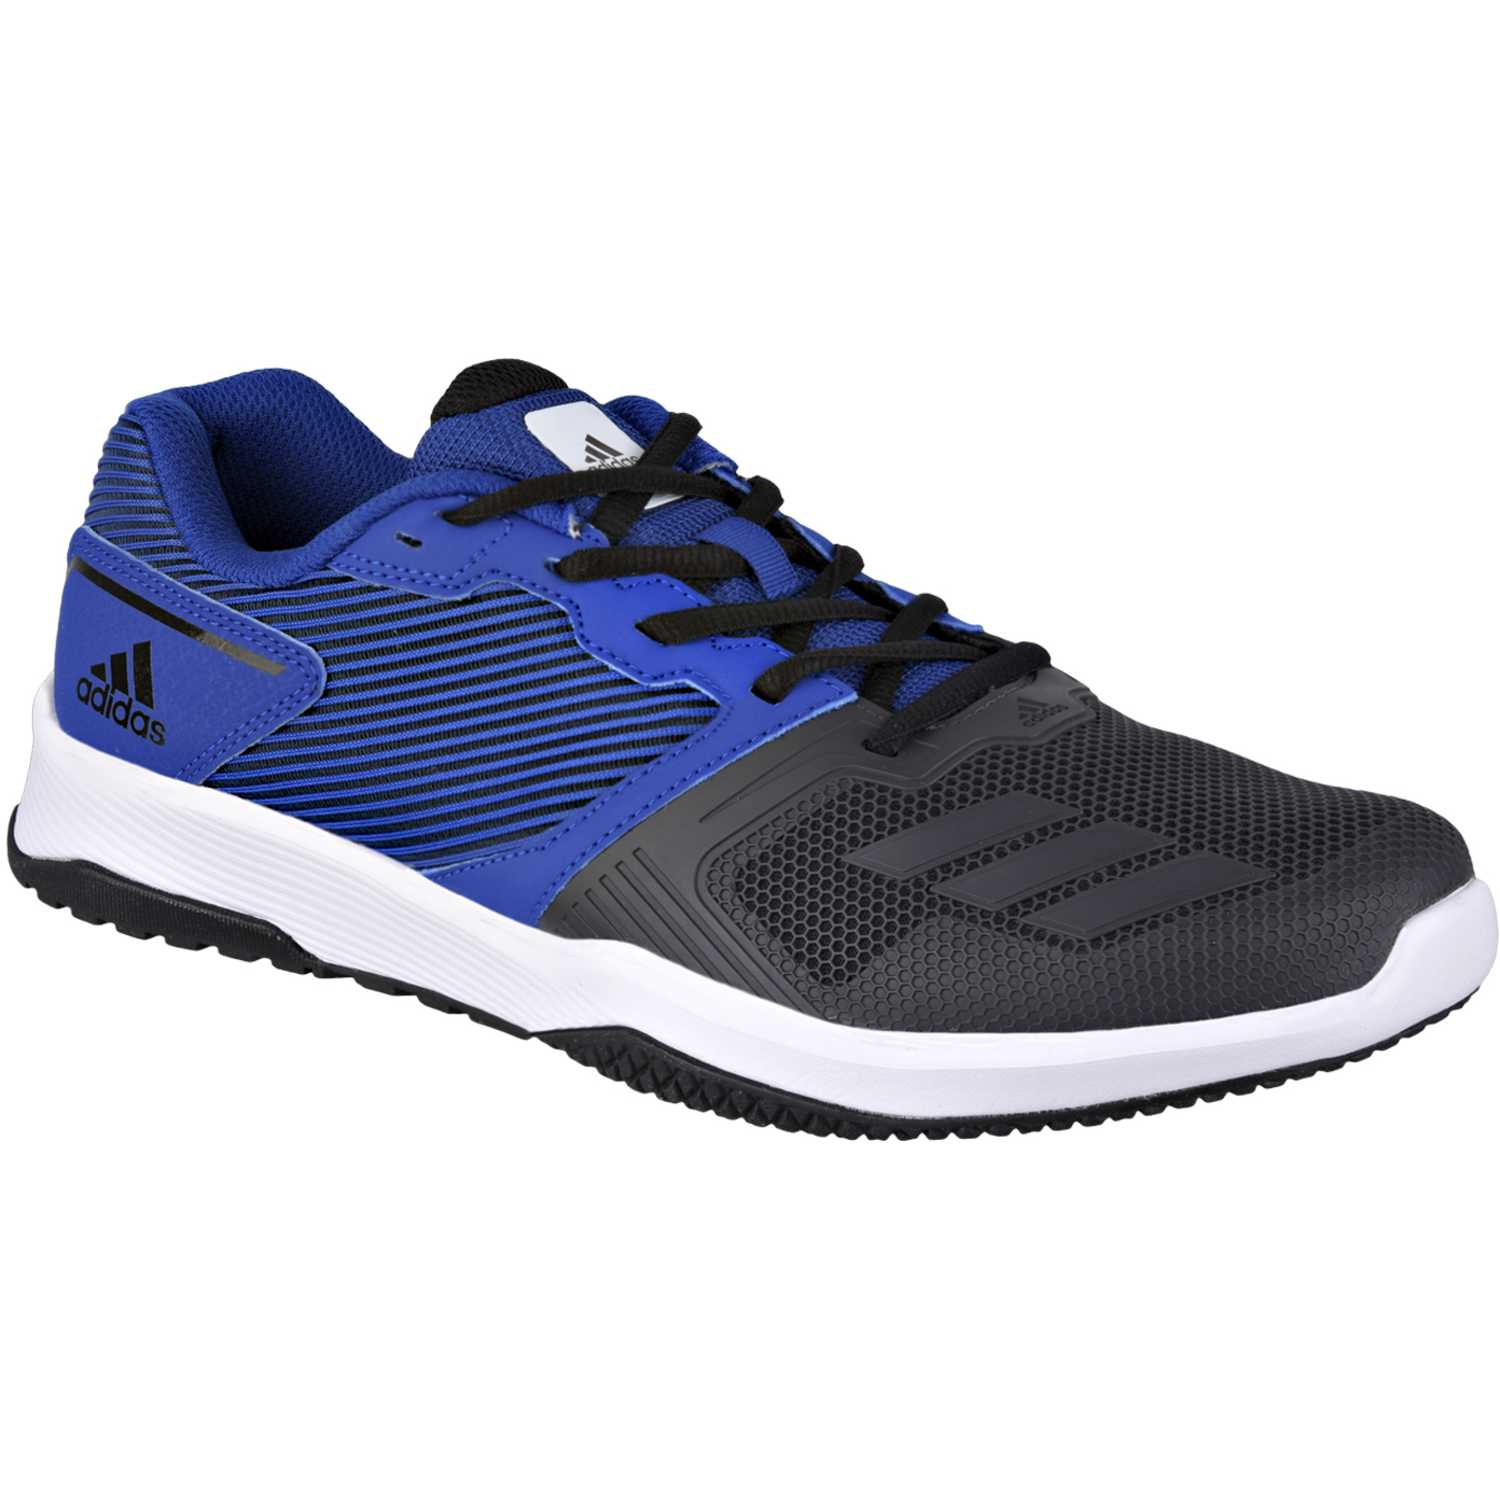 Adidas gym warrior 2 m Azul negro |